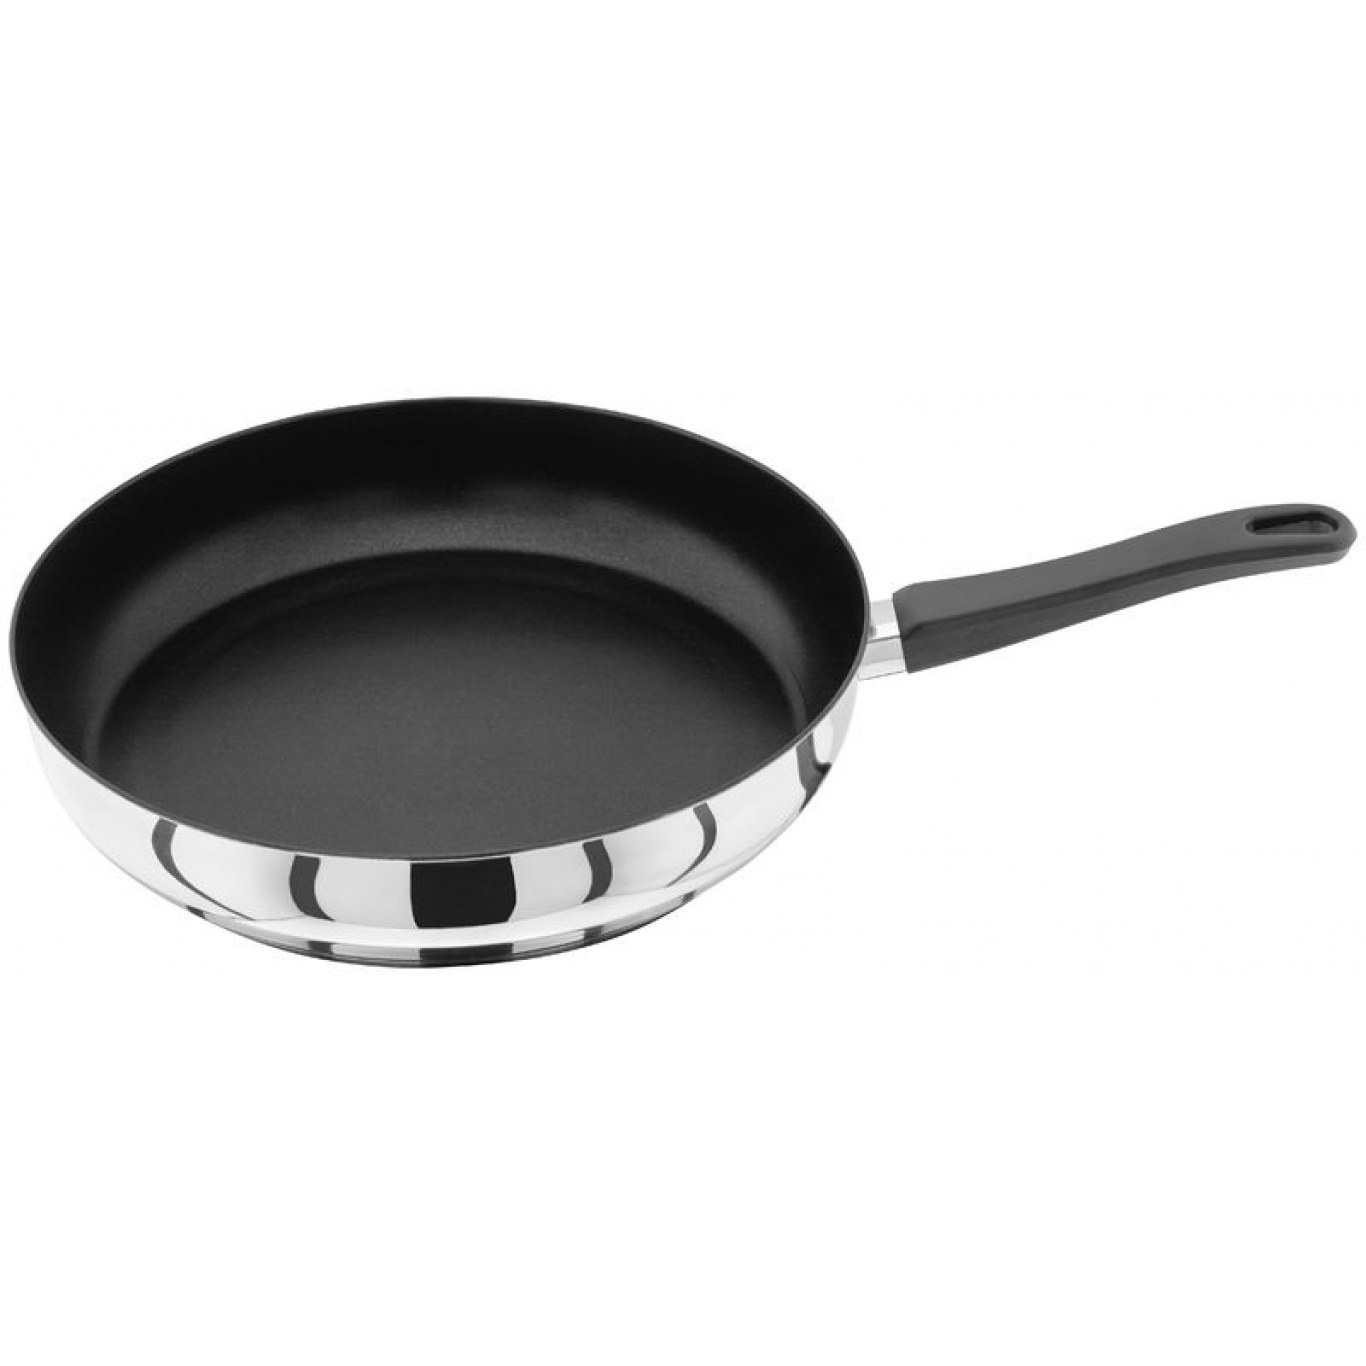 Image of Judge Vista 30cm Frypan